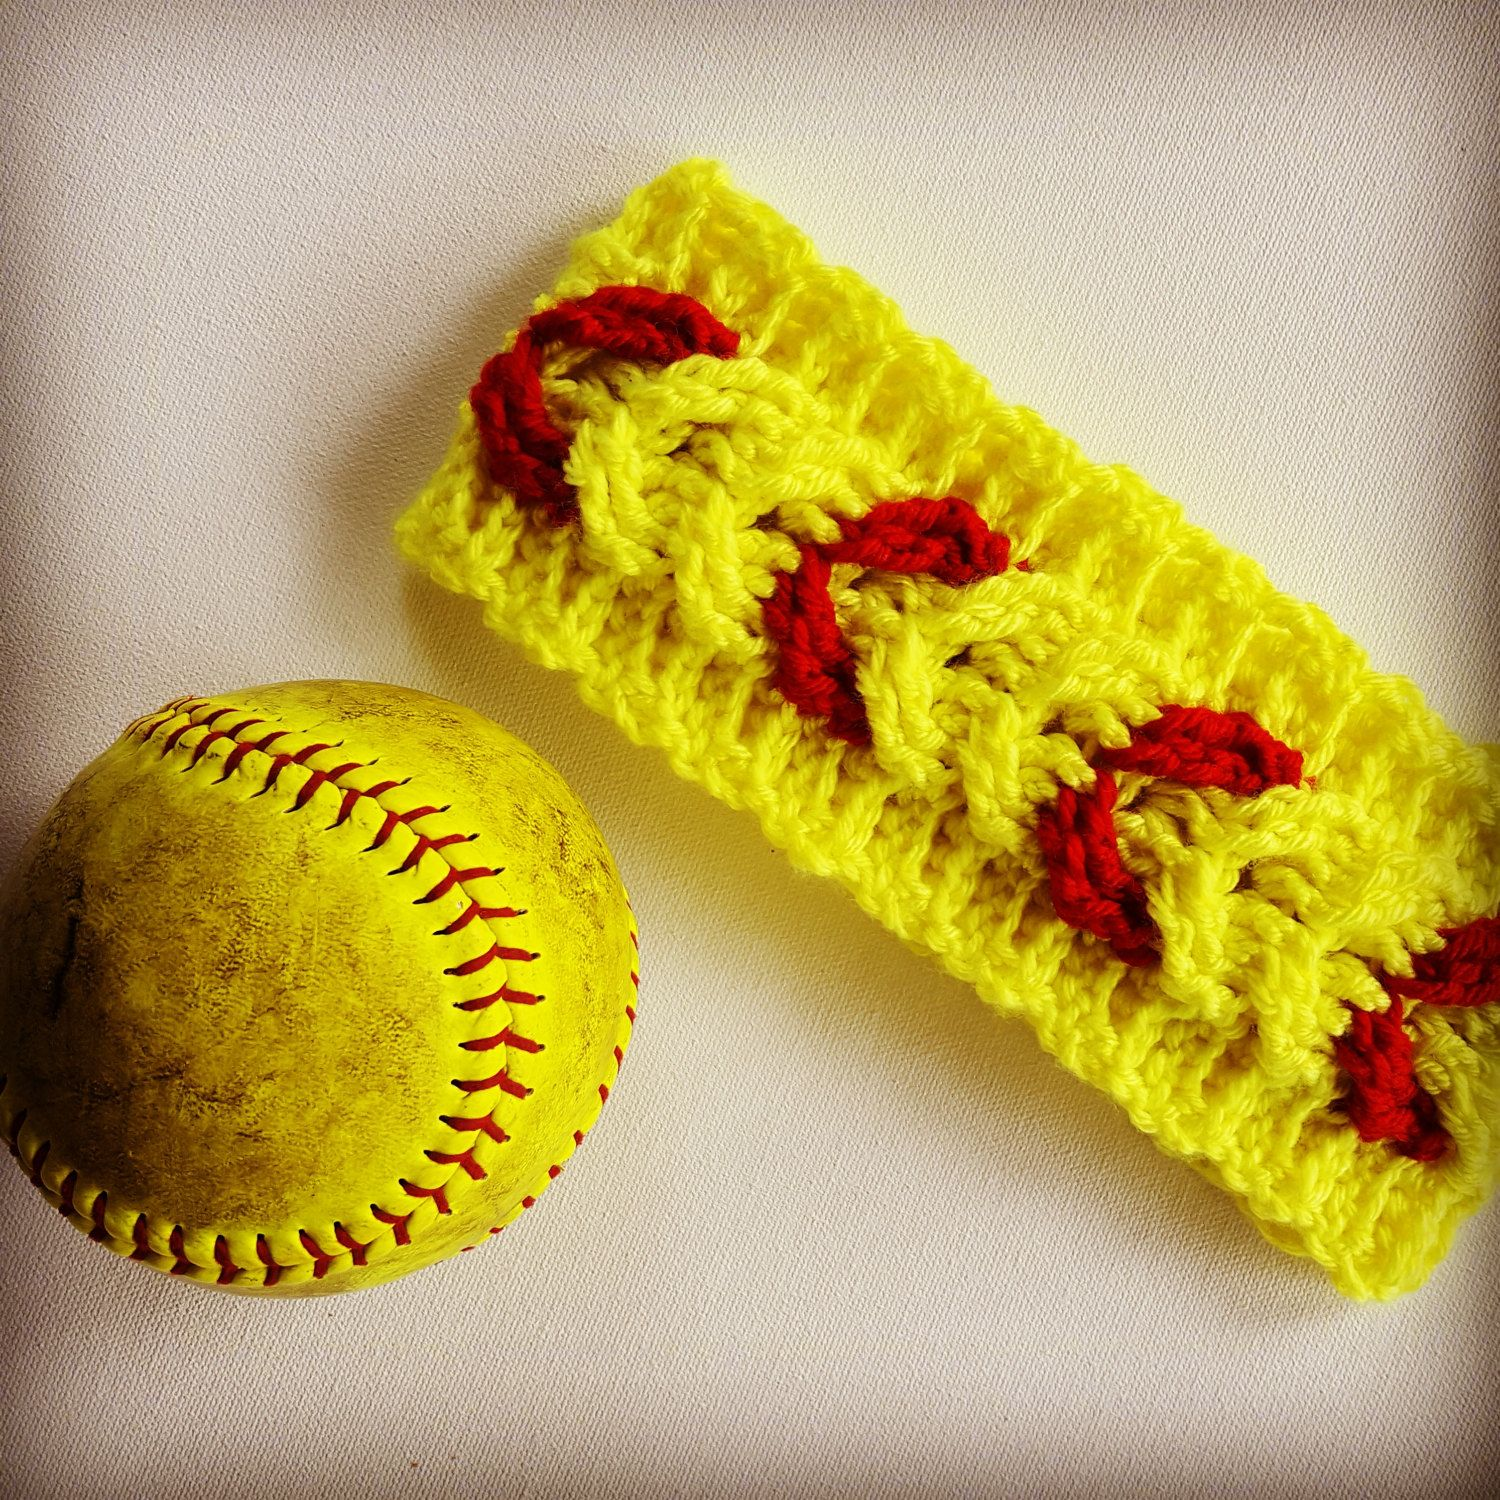 softball crochet earwarmer - baseball crochet earwarmer - crochet ...